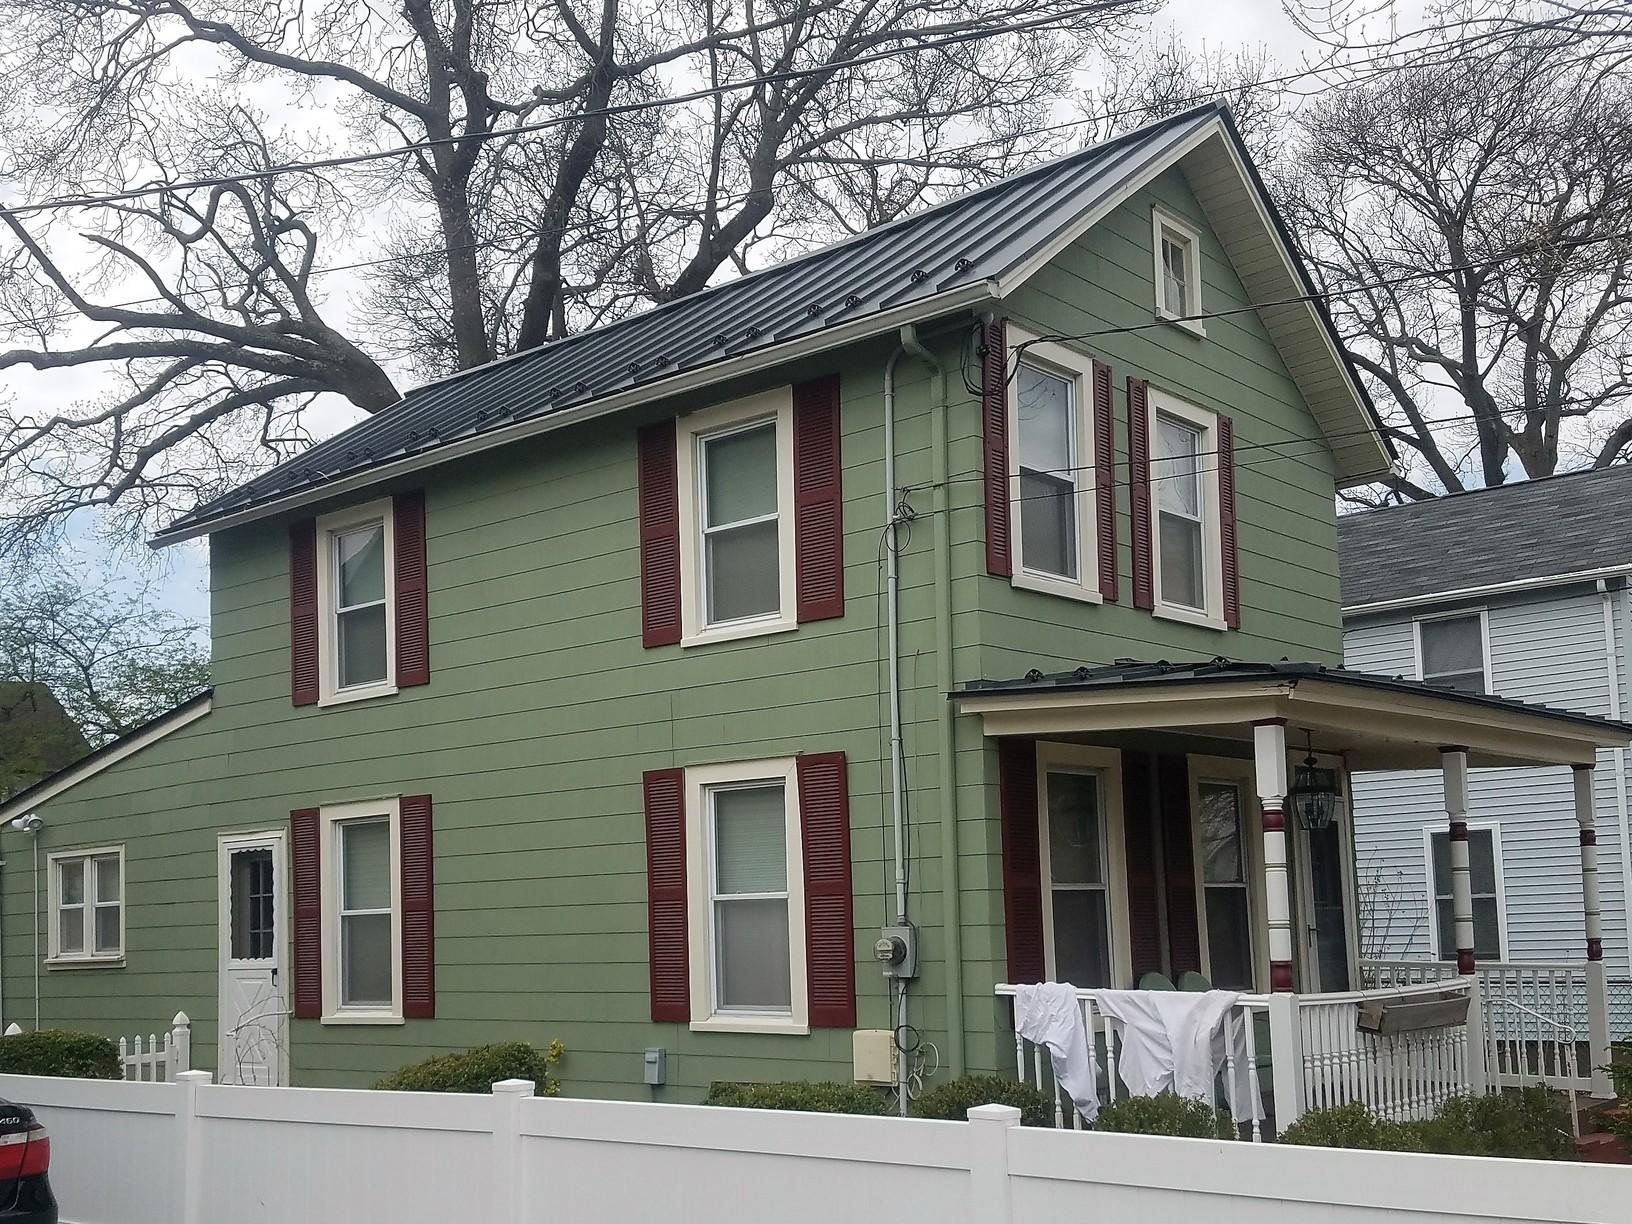 Standing Seam Metal Roofing Install in Red Bank, NJ - After Photo